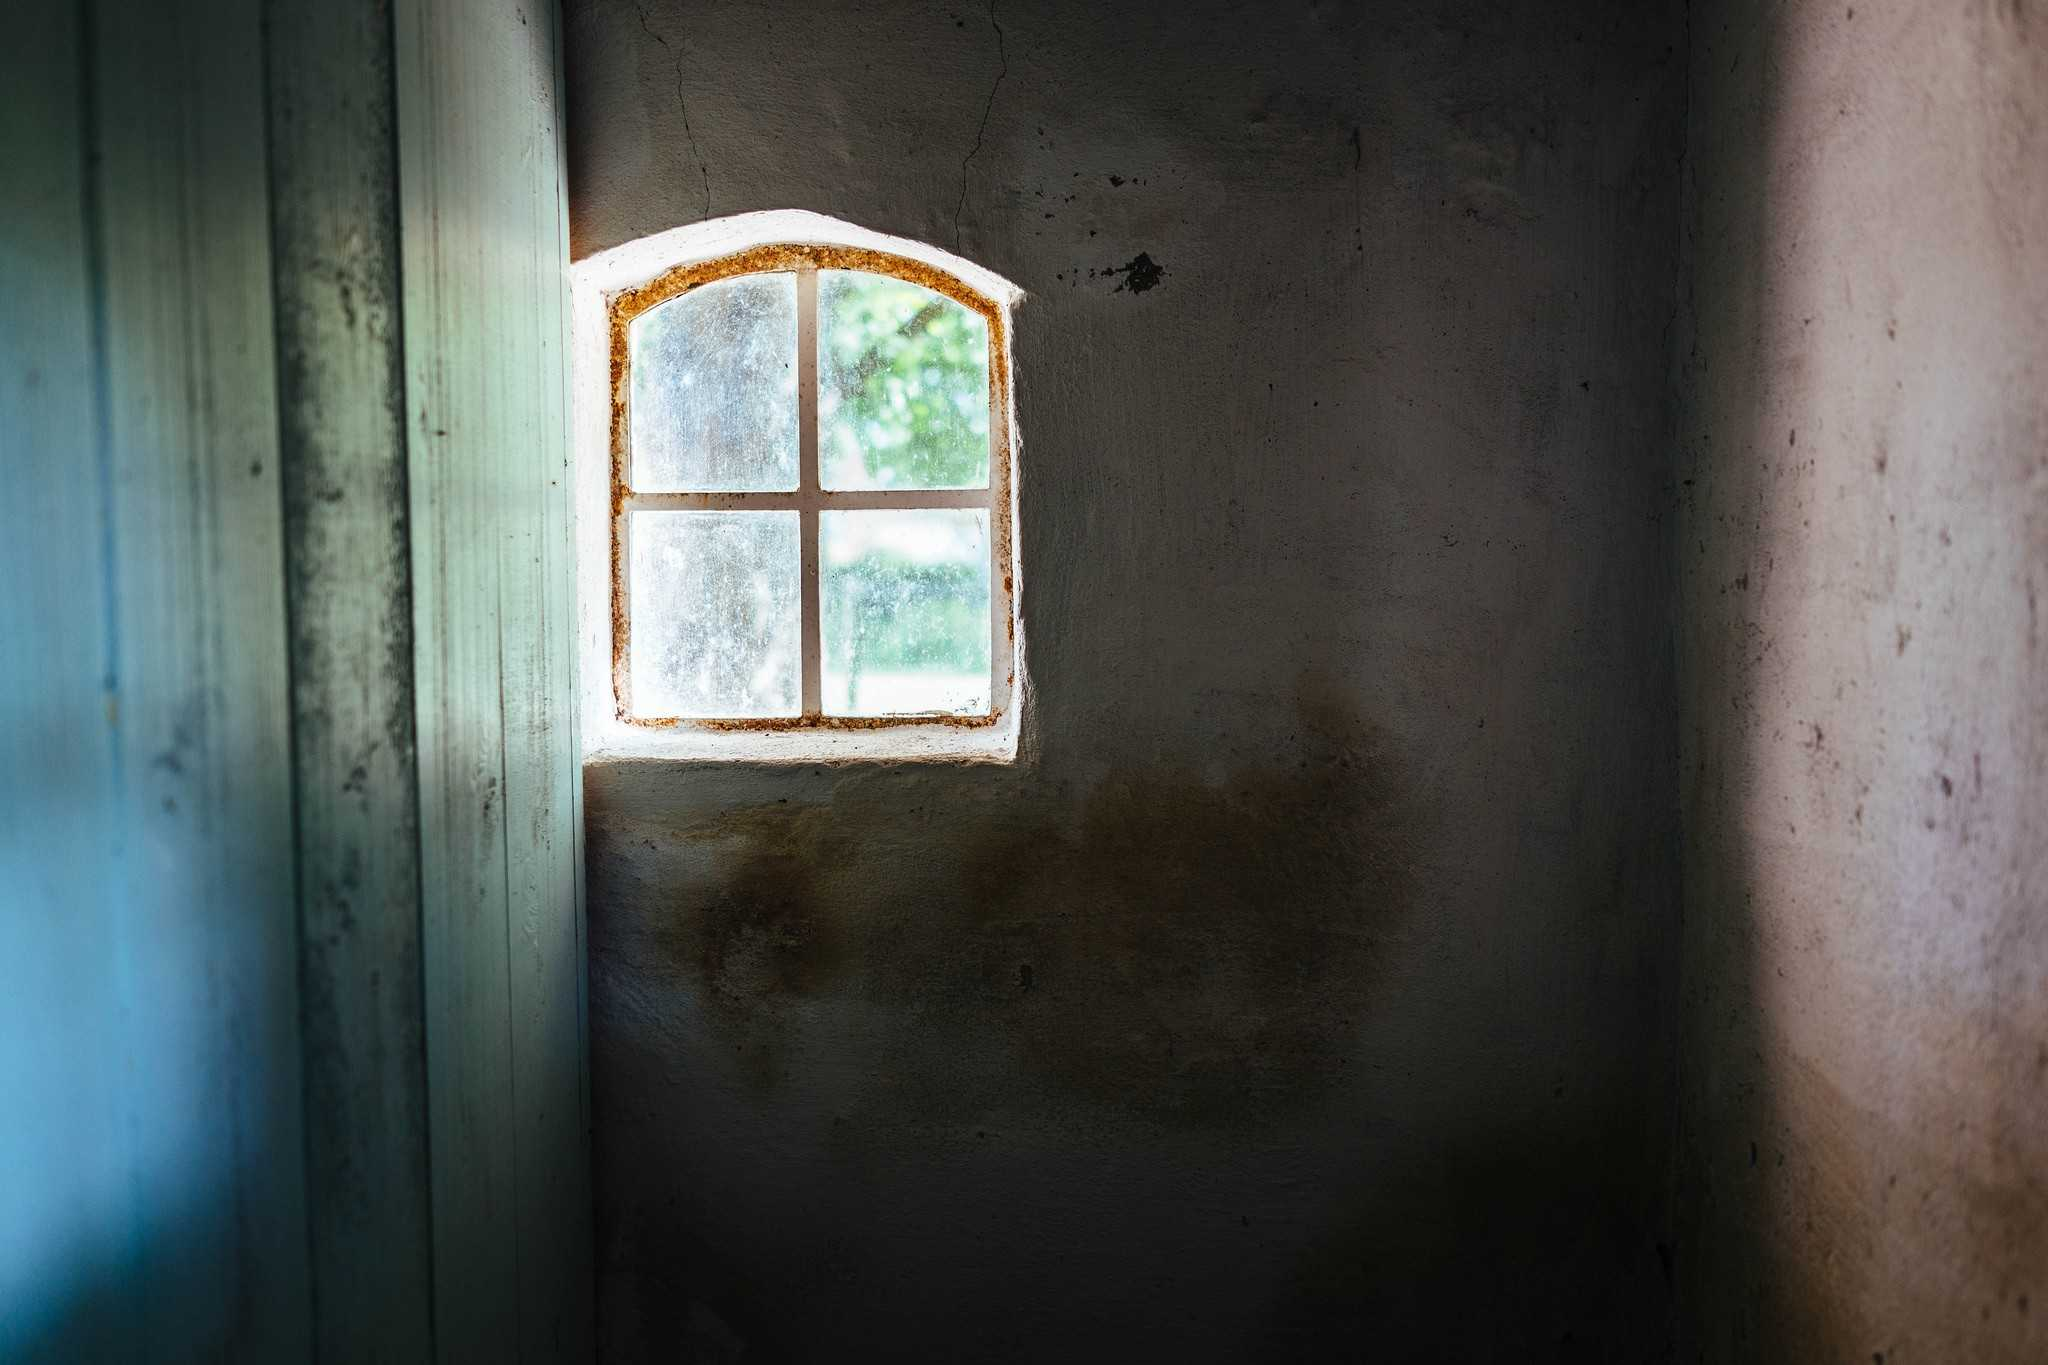 A window inside a bland home letting light through